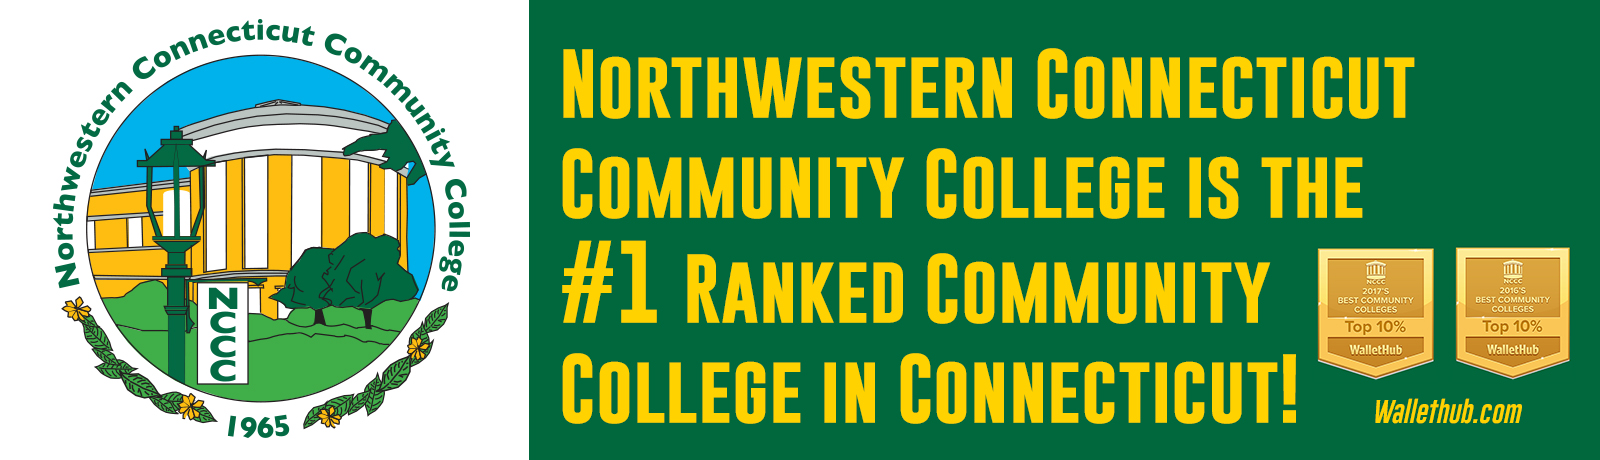 Click here for the complete college rankings.